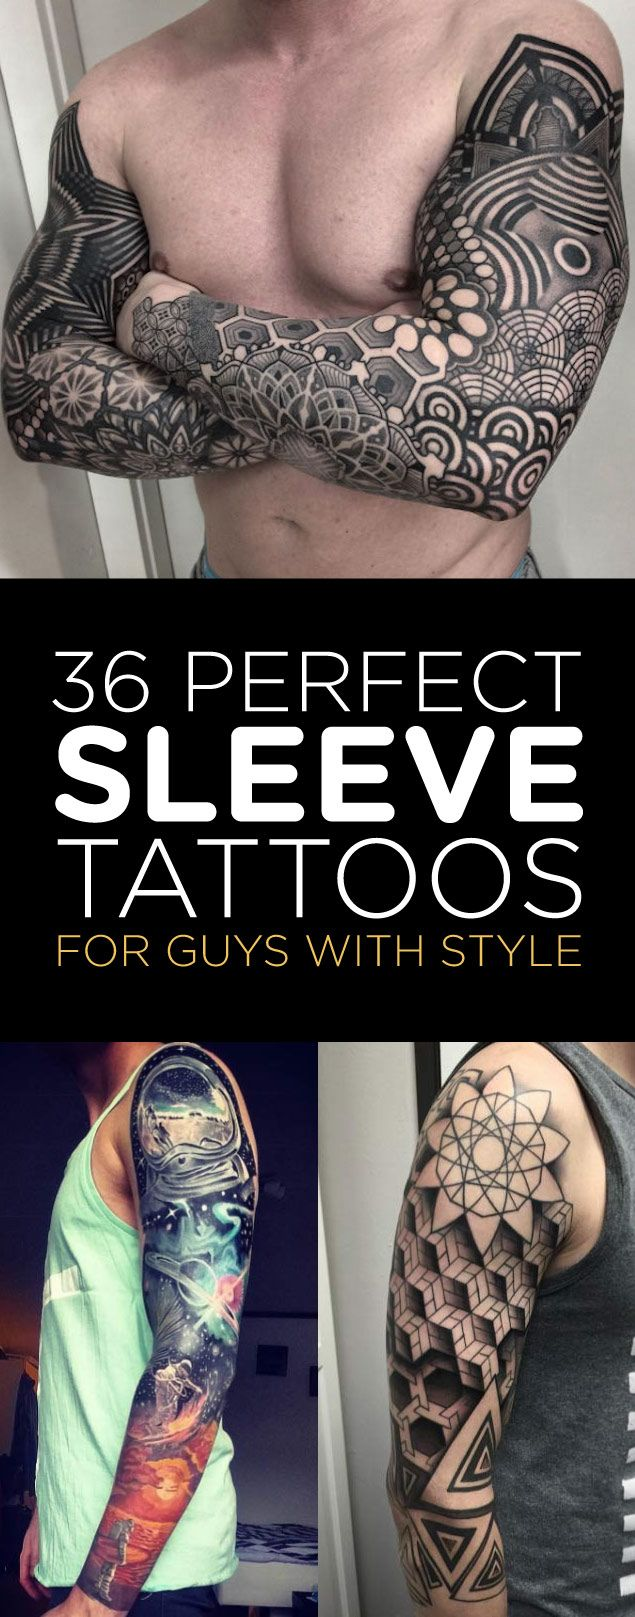 5ad3c006811f380cd43d07775b769348 sleeve tattoo guys sleeve tattoo ideas for guys